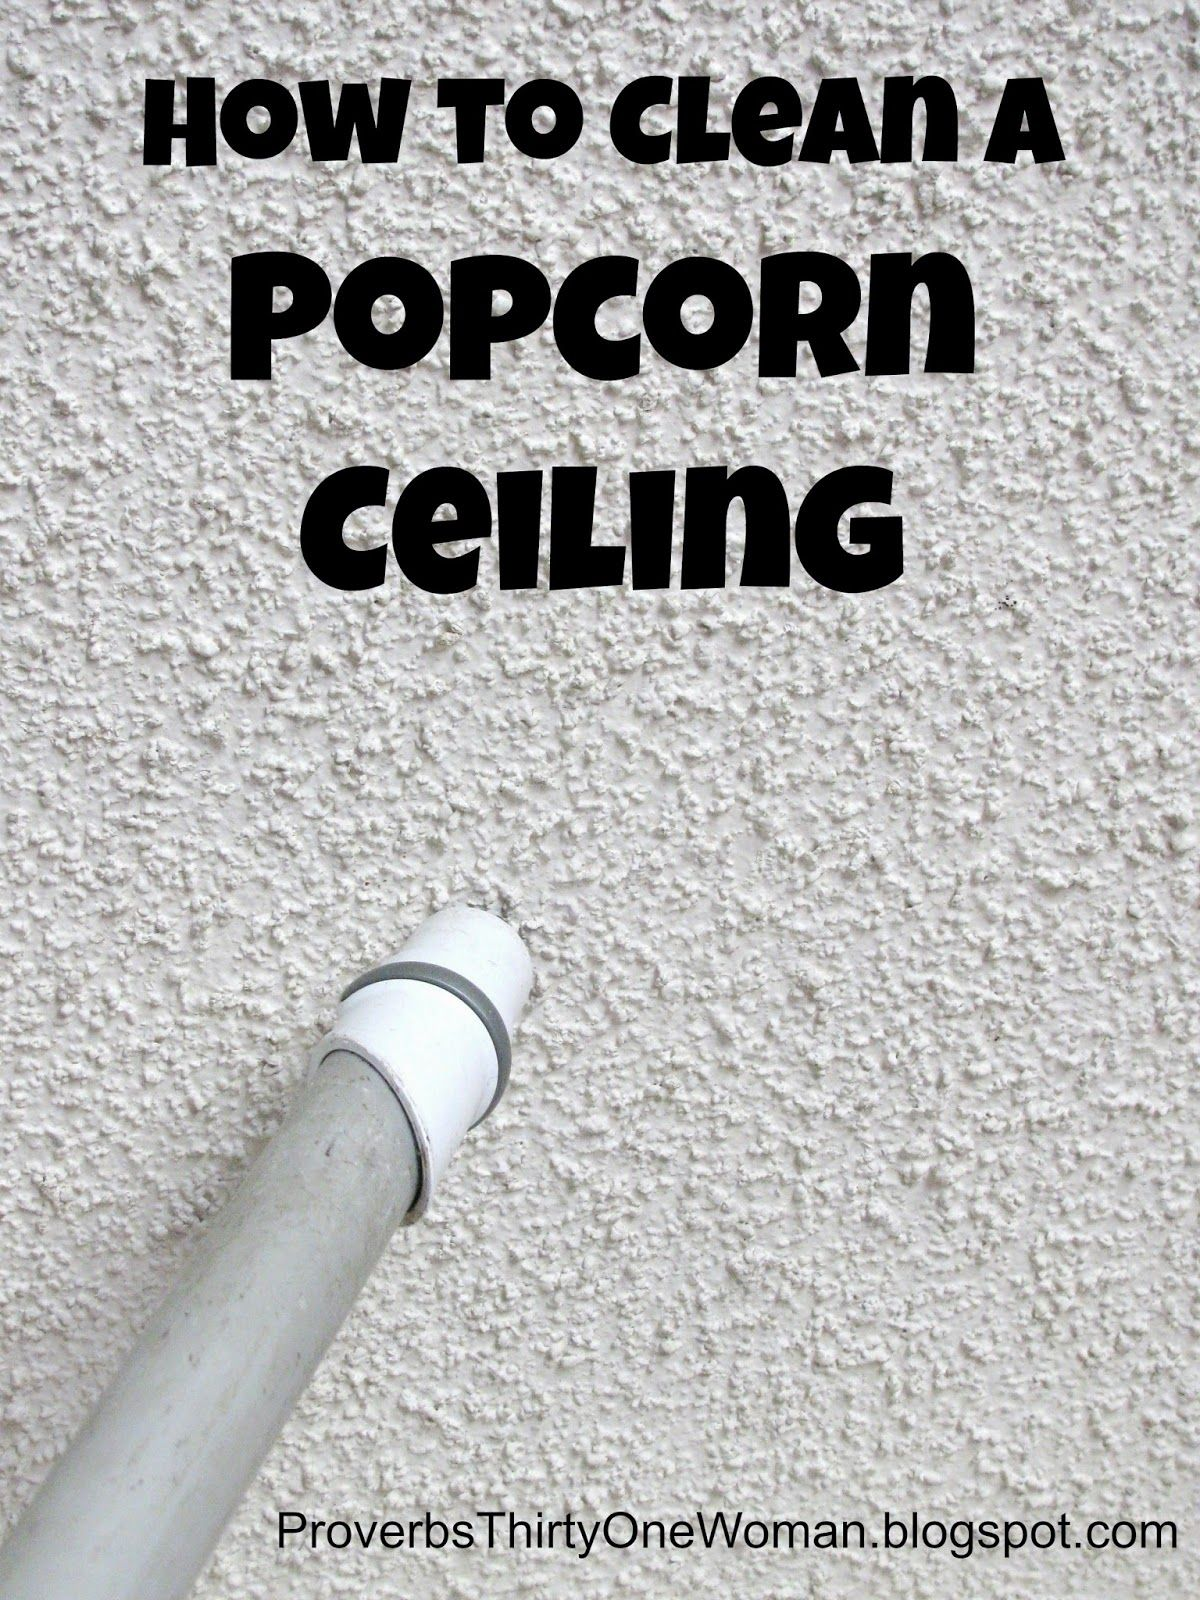 45+ Asbestos with popcorn ceiling